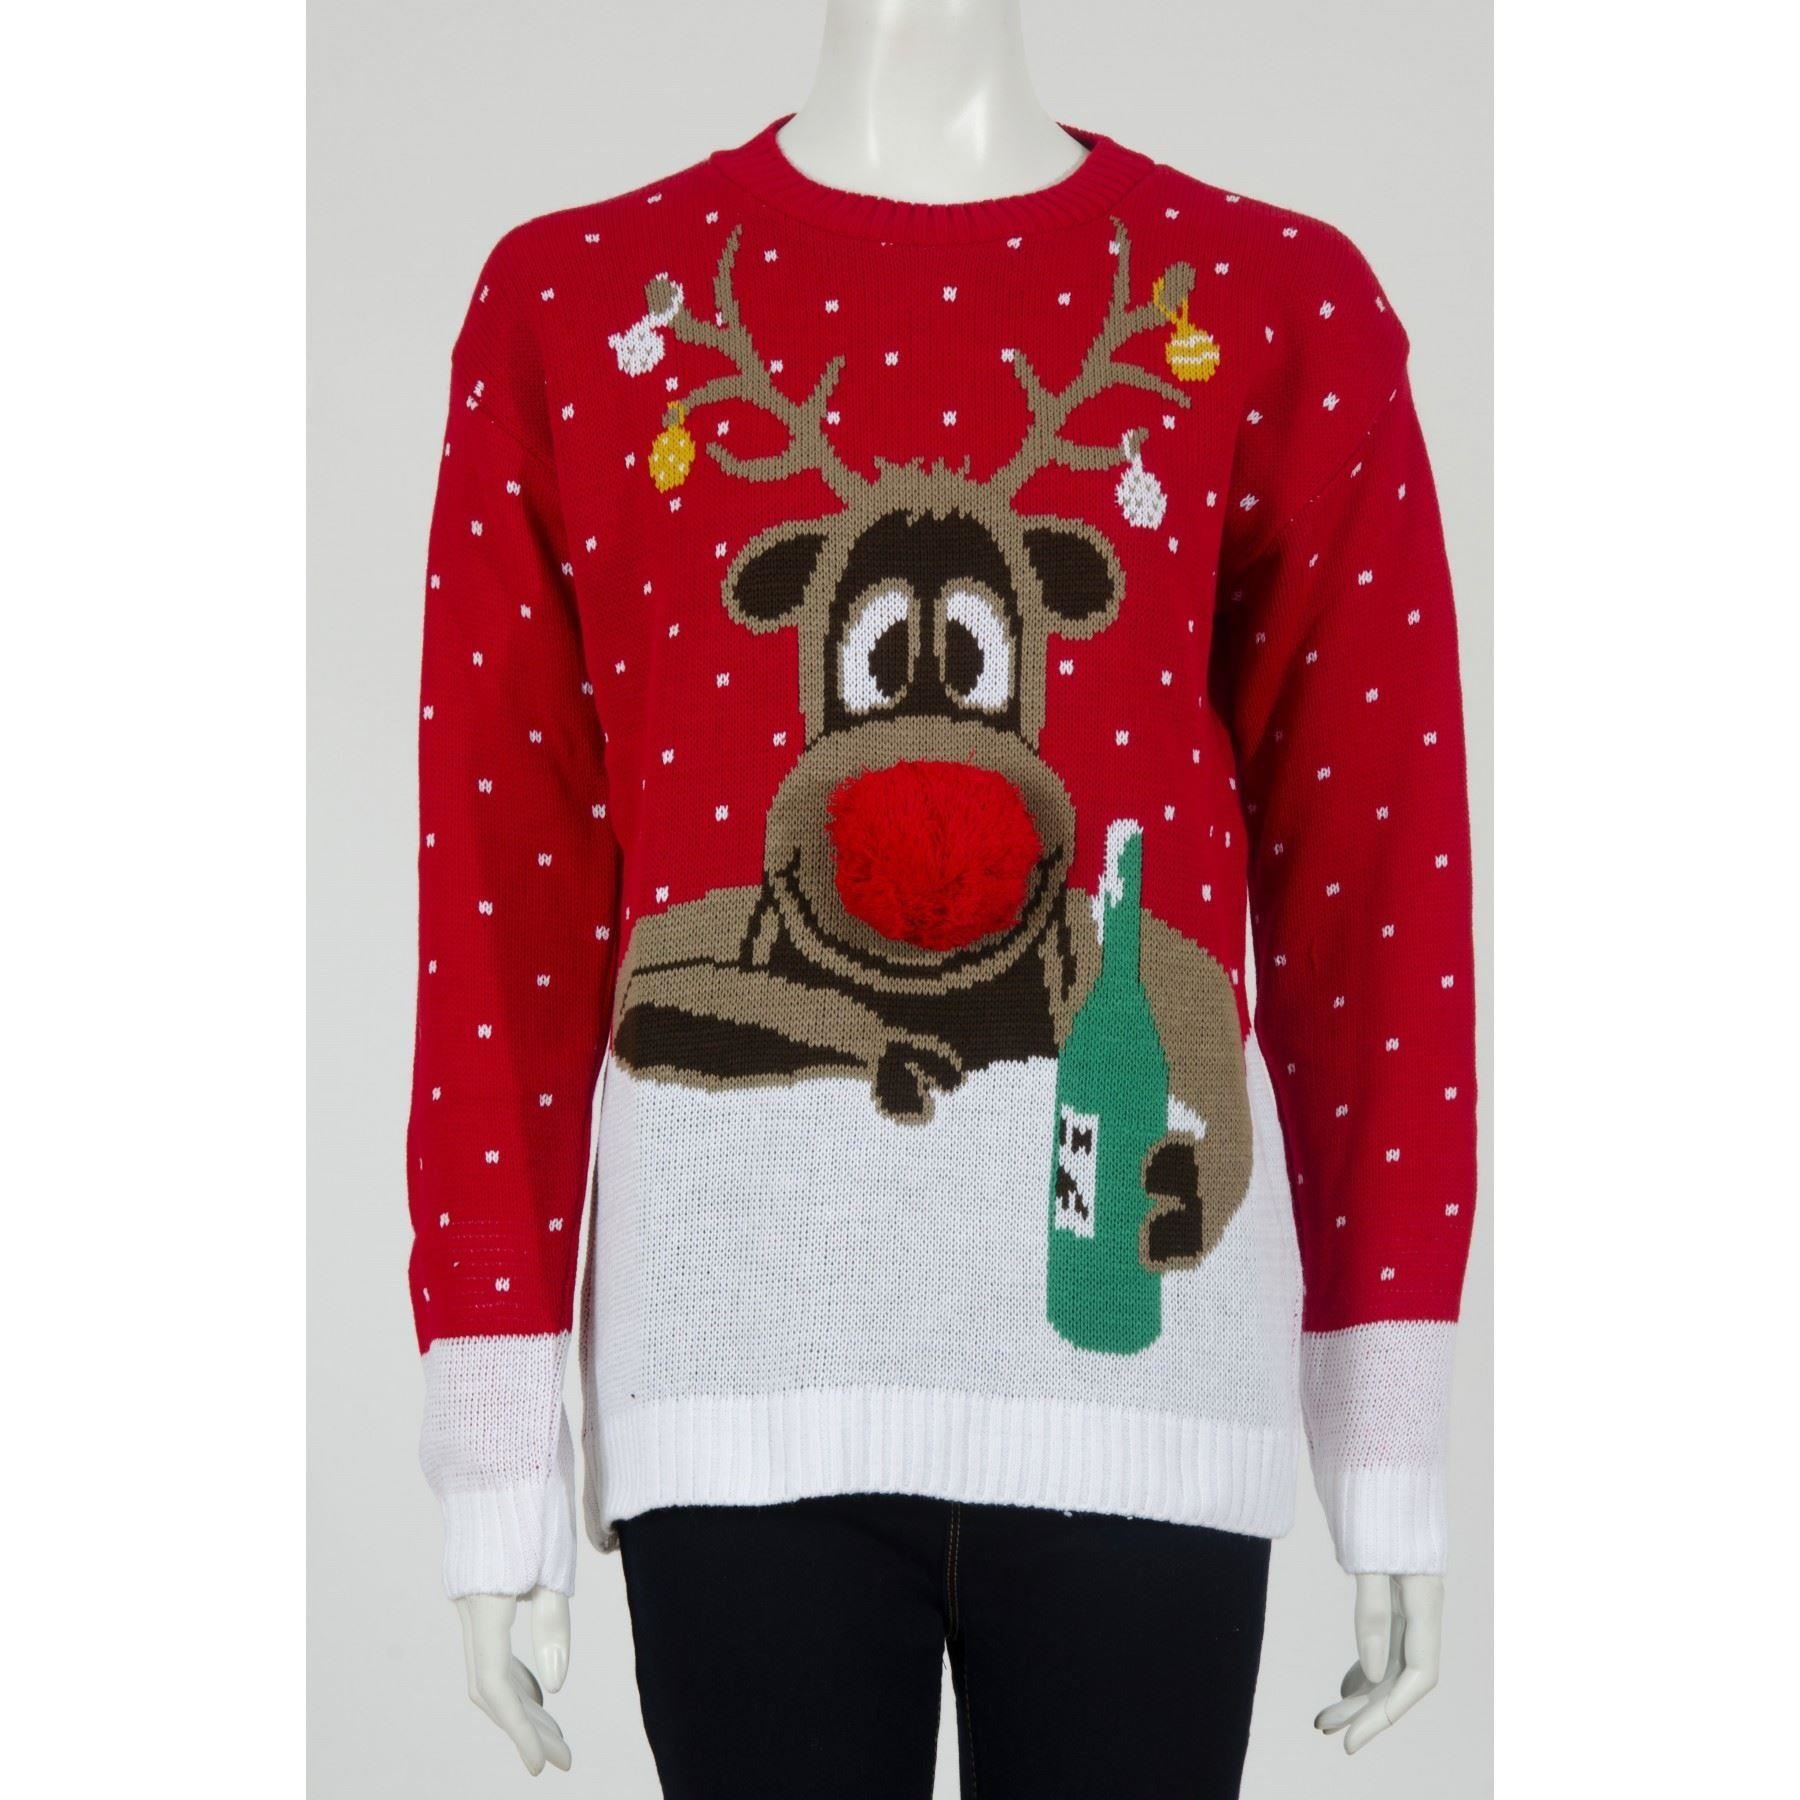 Olaf Christmas Jumper Knitting Pattern : Unisex Christmas Jumpers Olaf Minion Reindeer X-mas Knitted Tops Winter Jumpe...